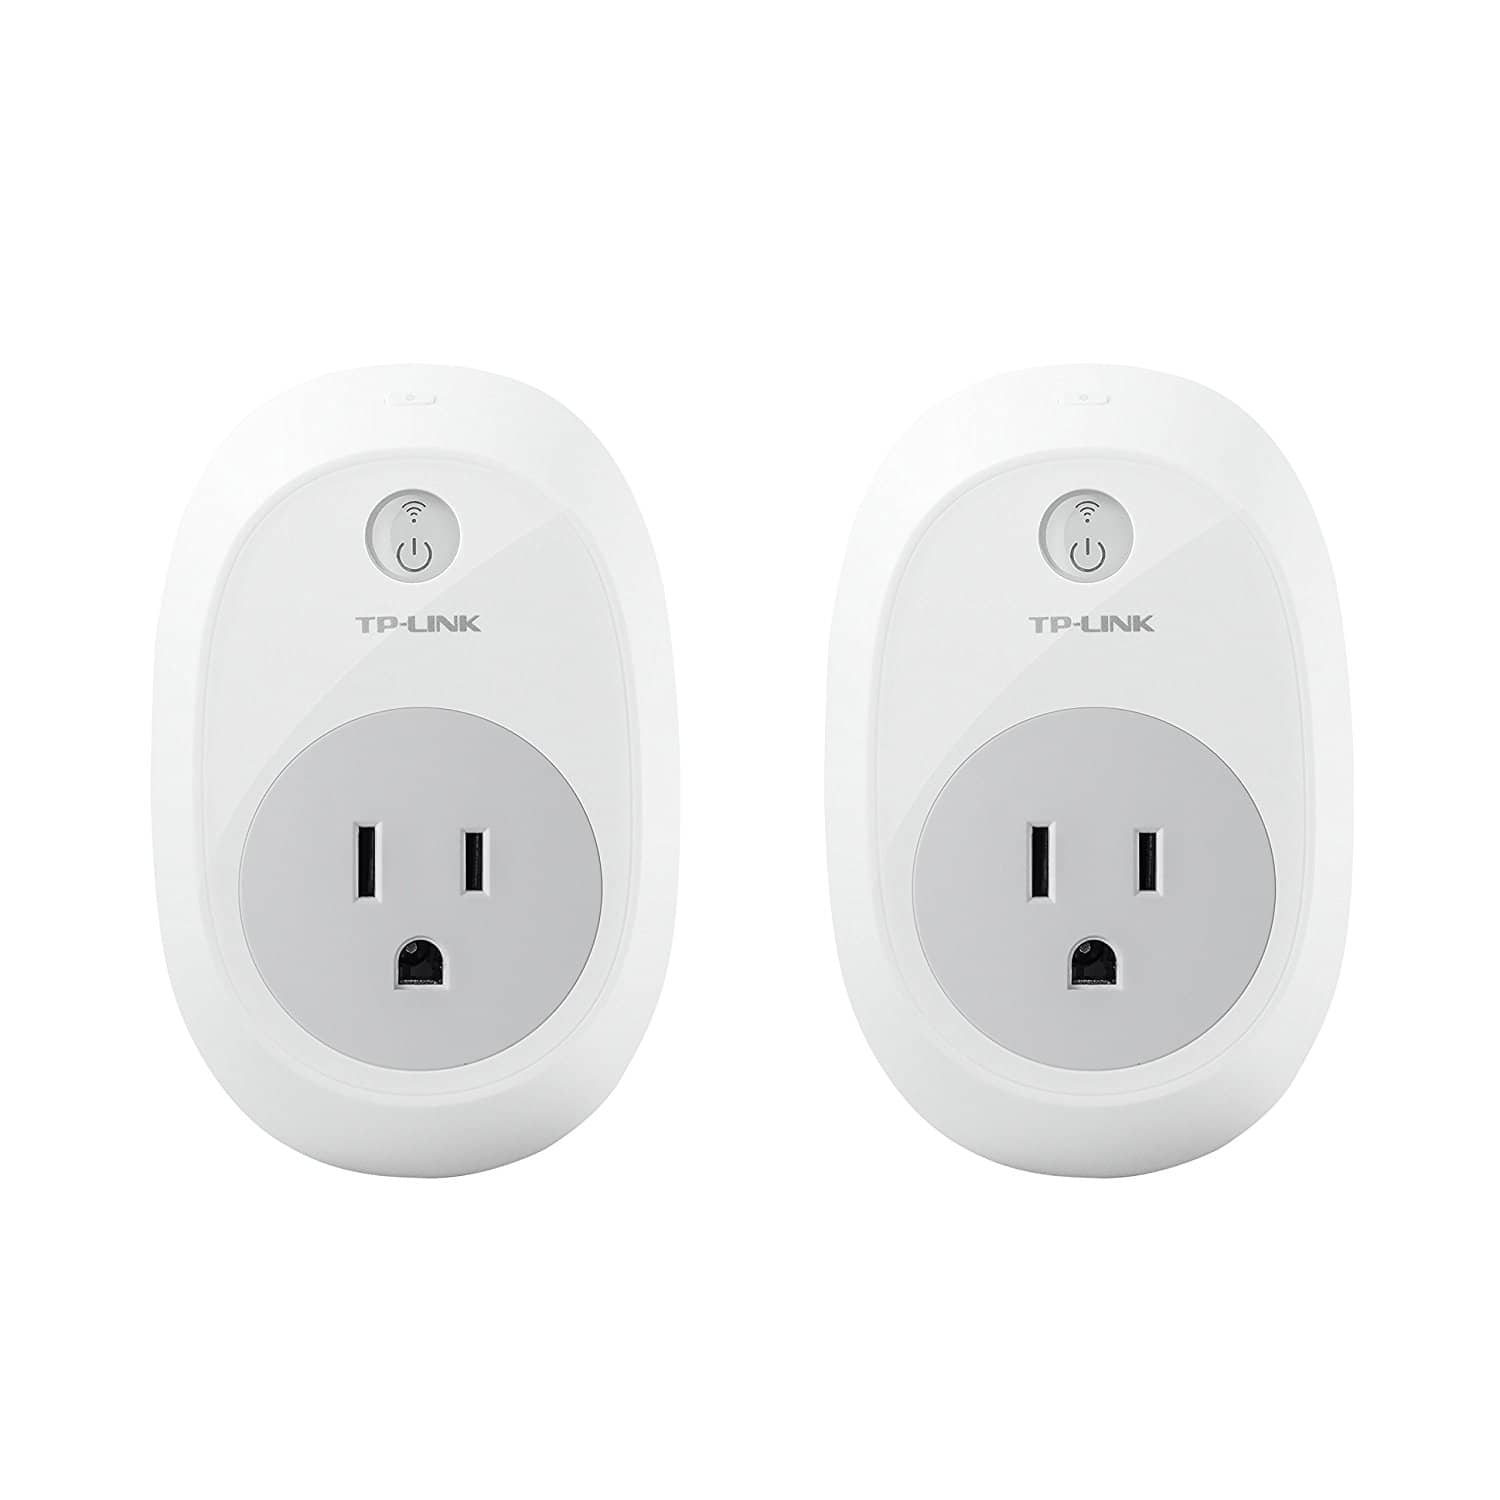 TP-Link HS100 Smart Plug 2 pack @Amazon - Thru Alexa deals only - YMMV $39.91